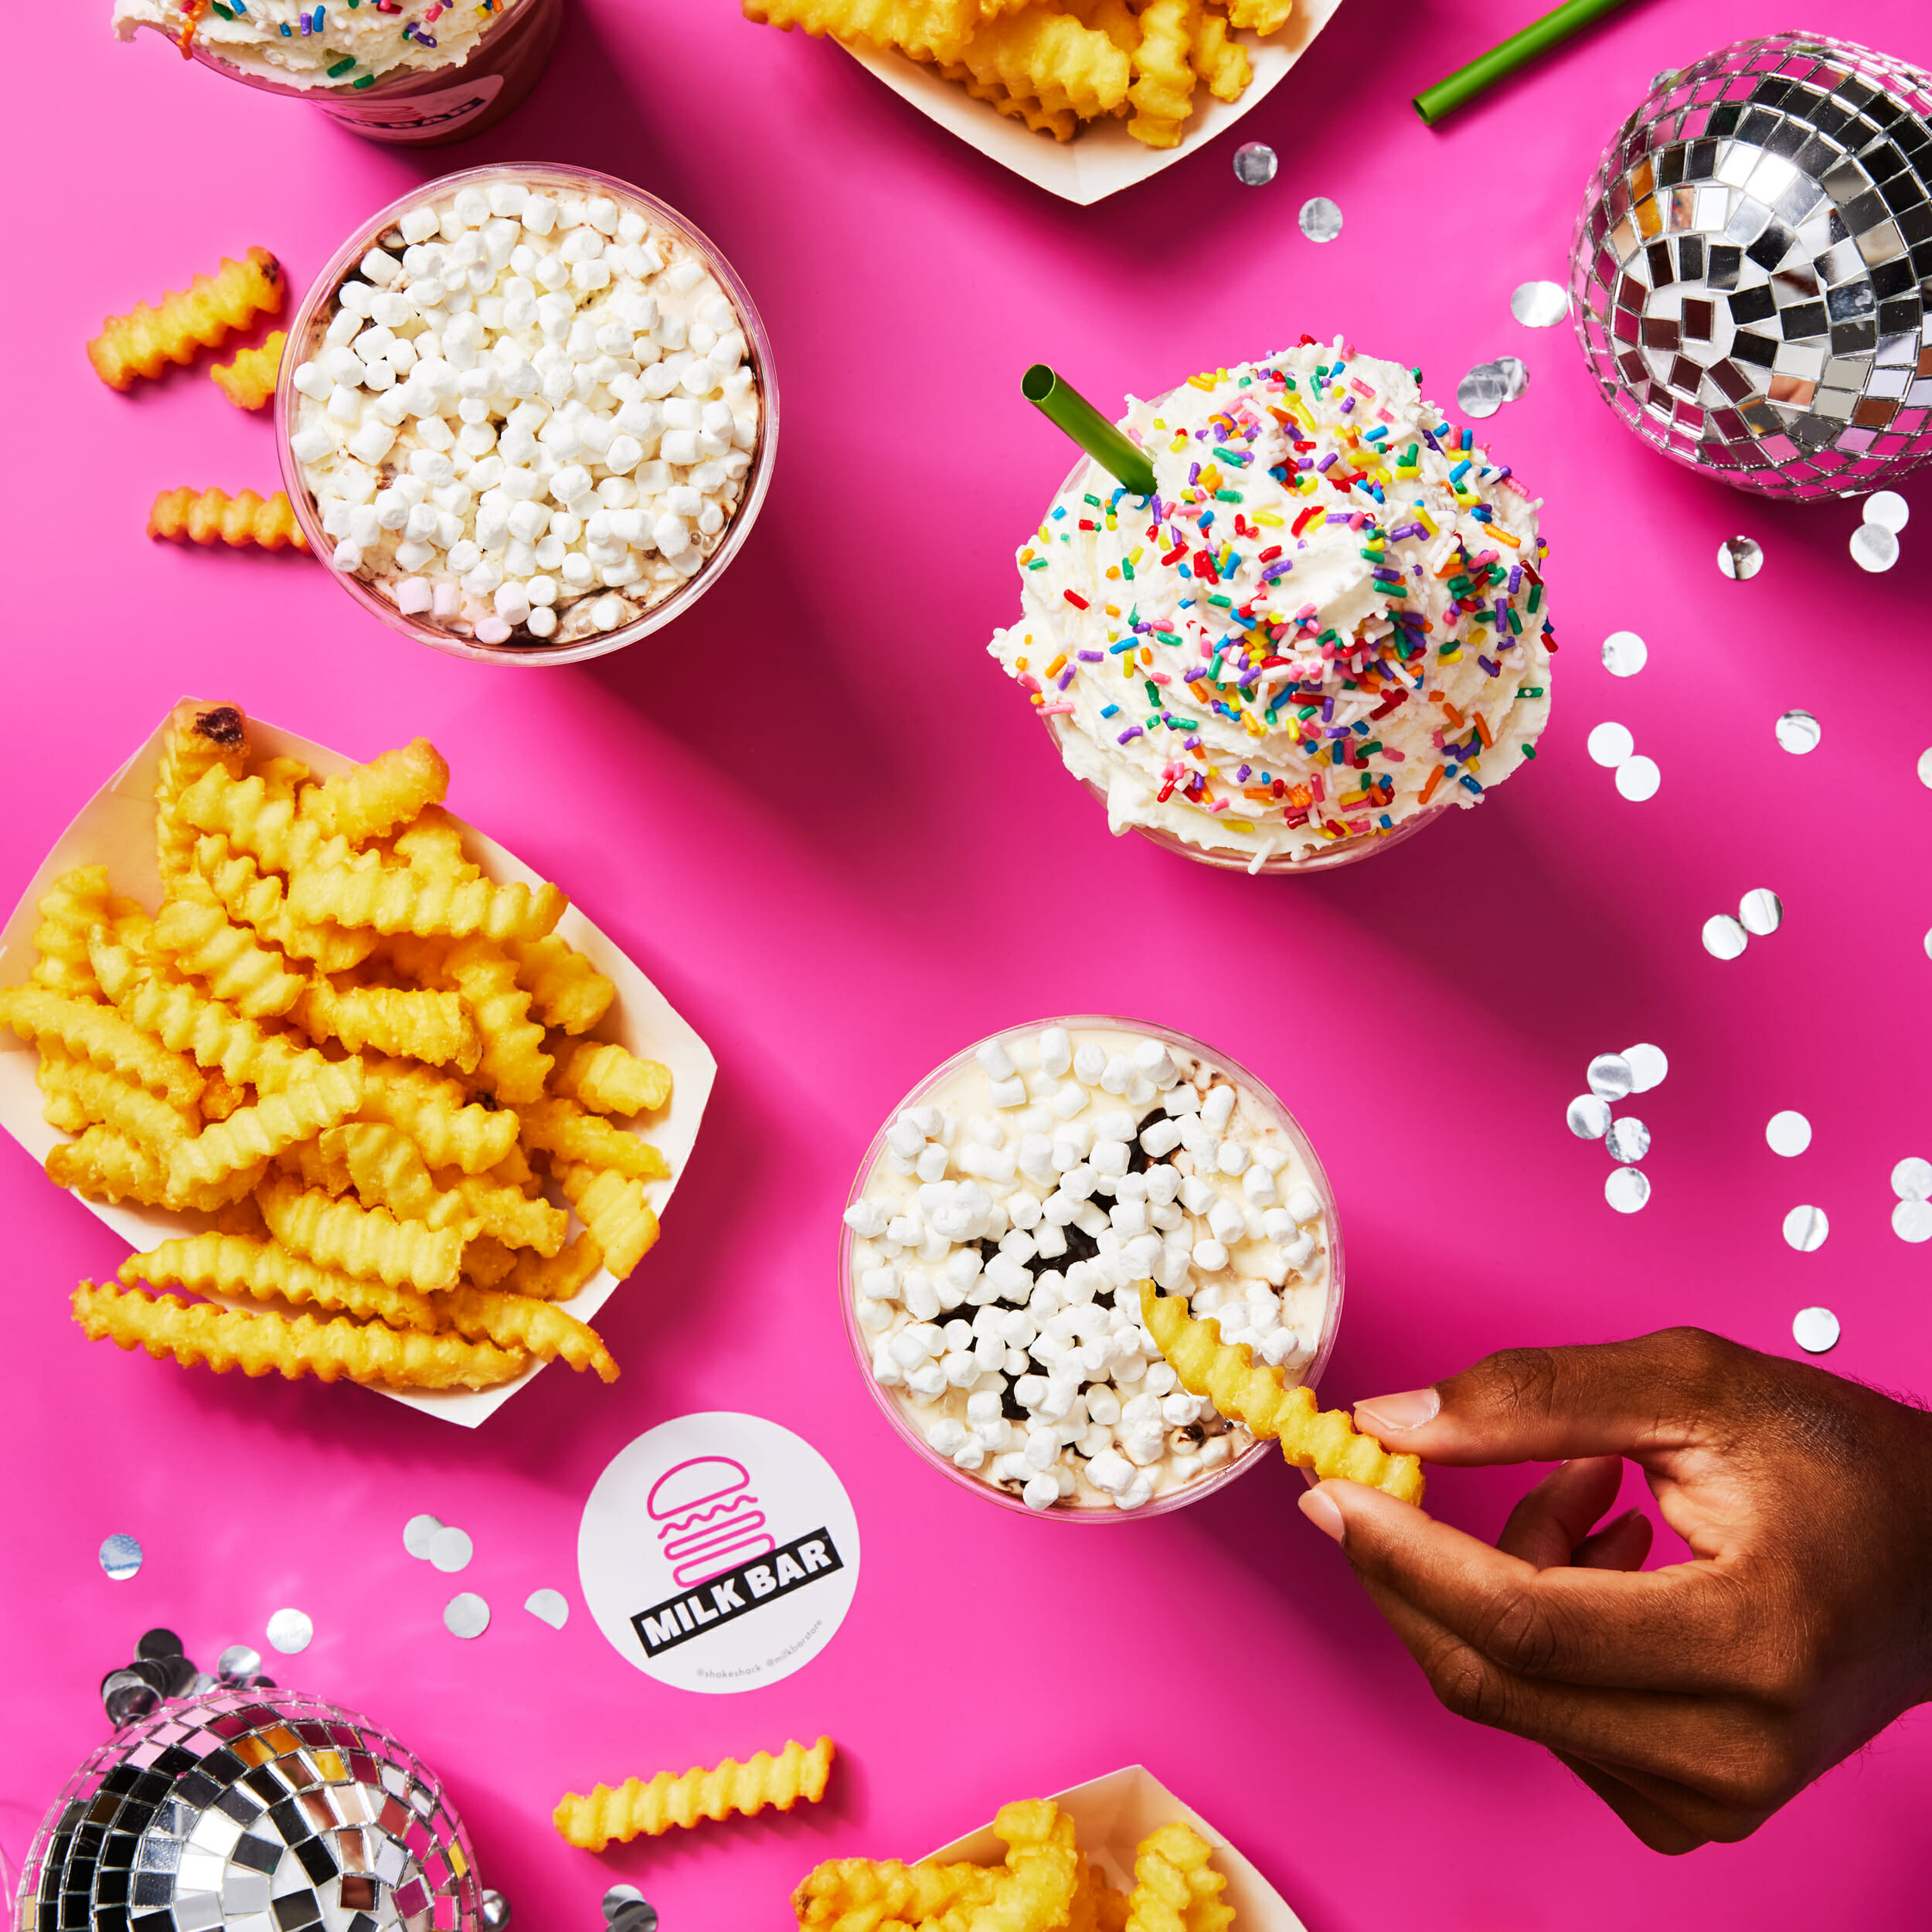 An overhead view of someone's hand grabbing a french fry and dipping it into a milkshake. On the table are a few baskets of fries, some milkshakes, a disco ball, and the Milk Bar logo.